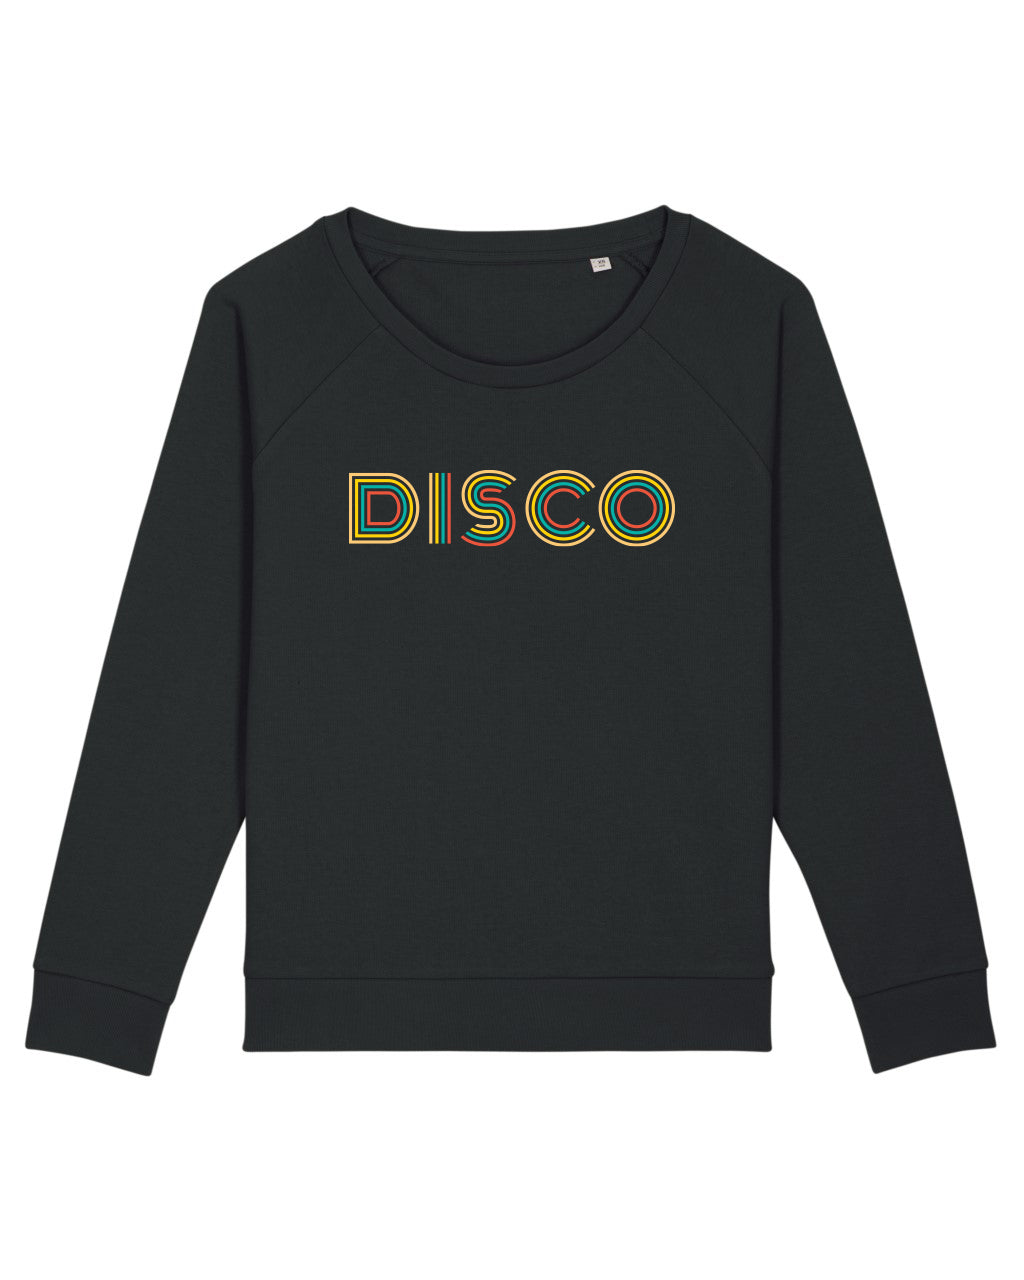 DISCO Sweatshirt